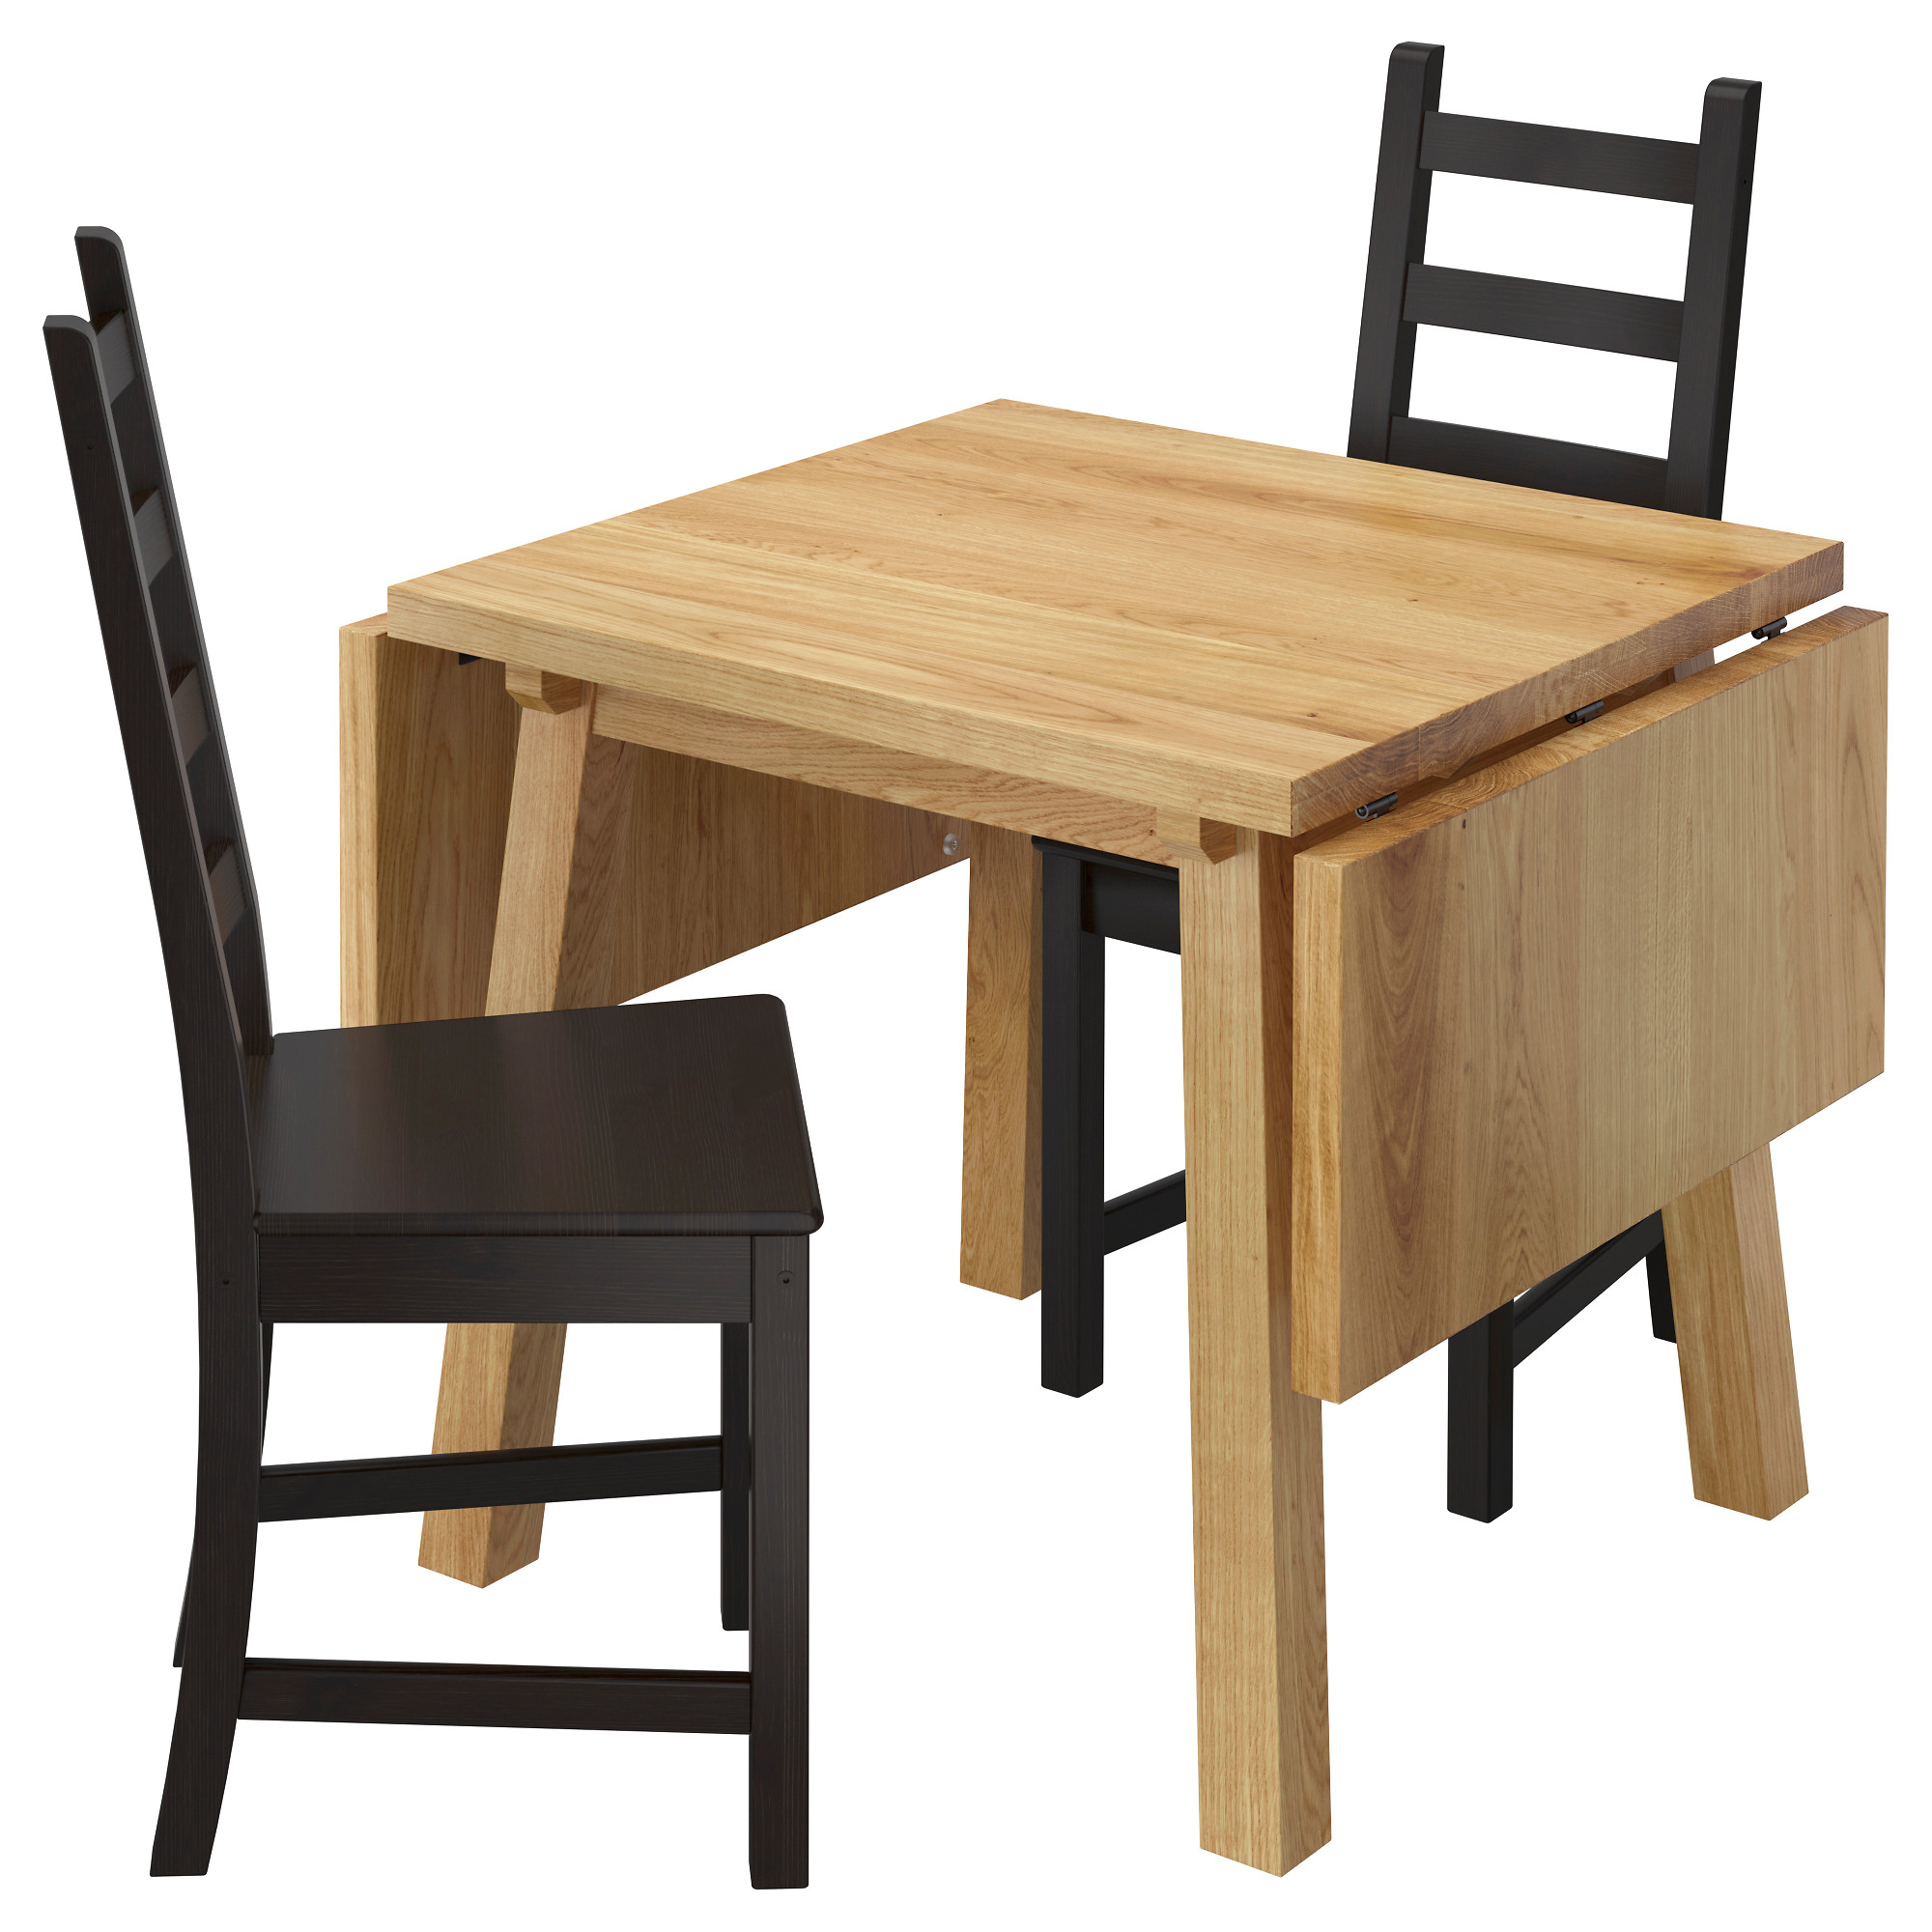 M–CKELBY KAUSTBY Table and 2 chairs IKEA